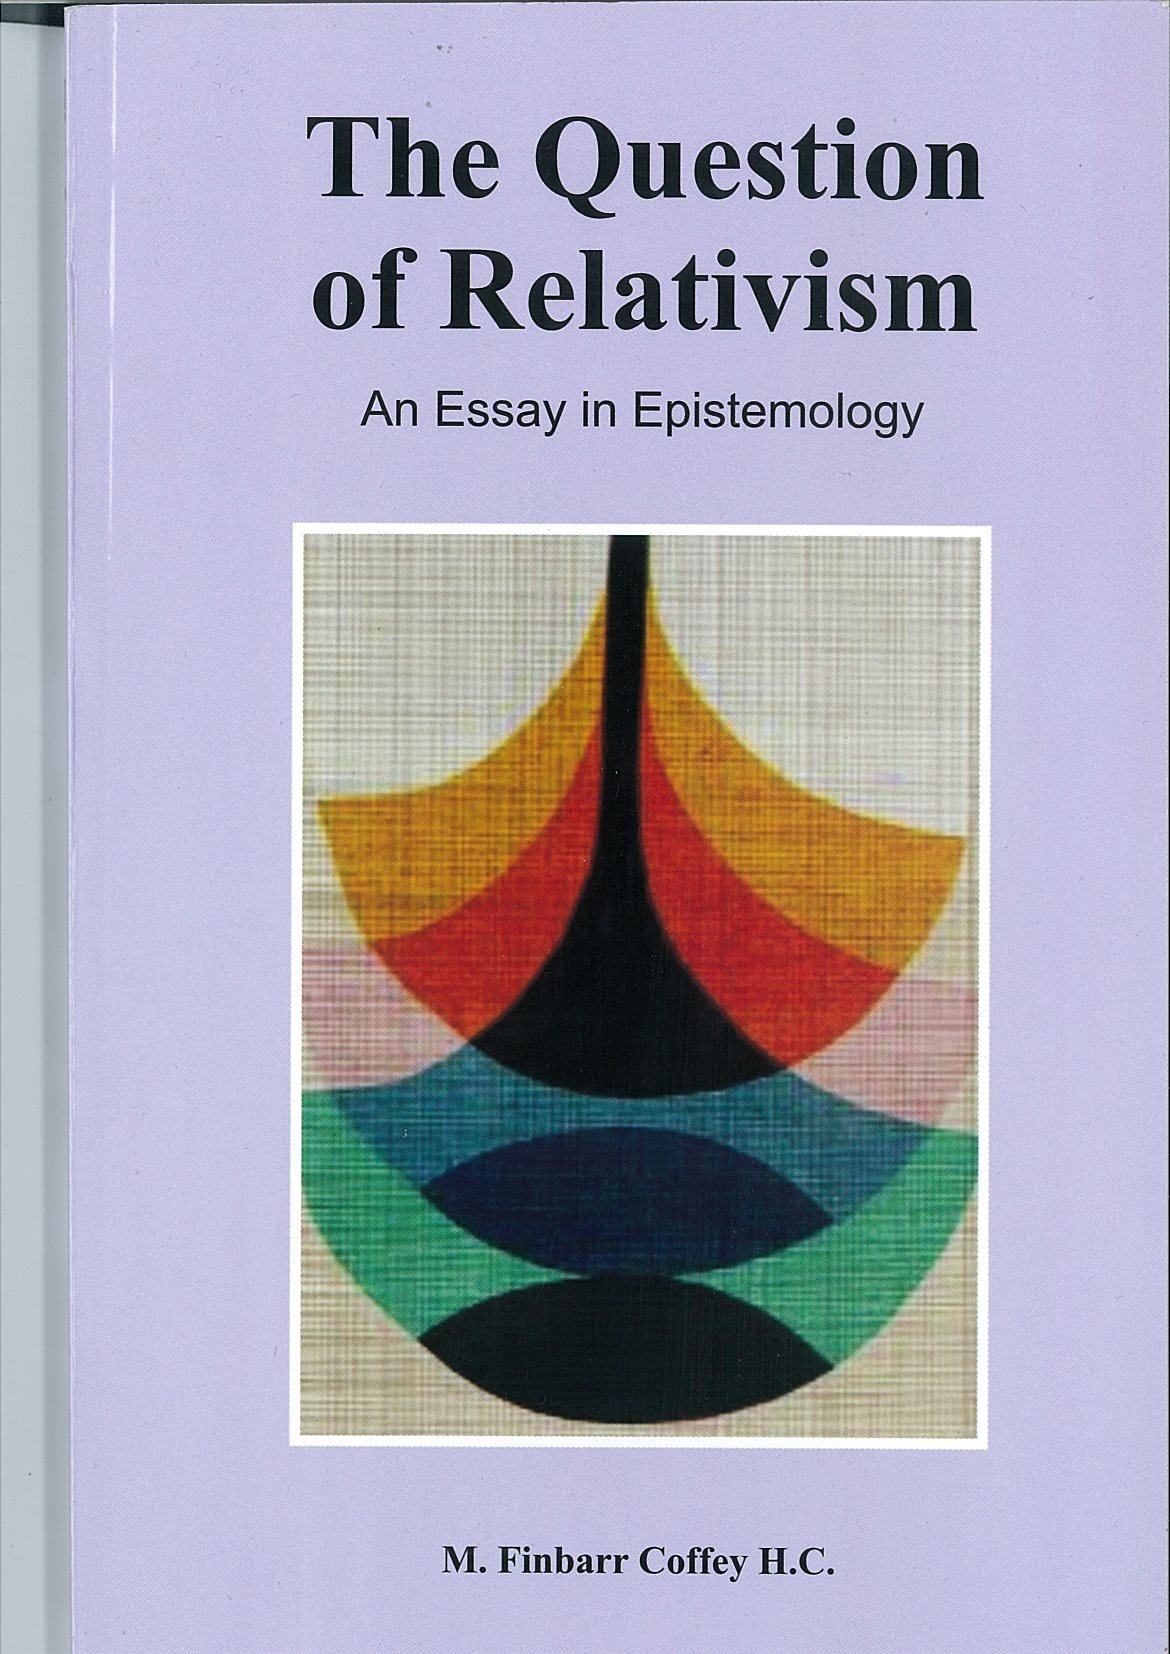 the question of relativism amazon co uk m finbarr coffey h c the question of relativism amazon co uk m finbarr coffey h c tom deegan 9781858454207 books